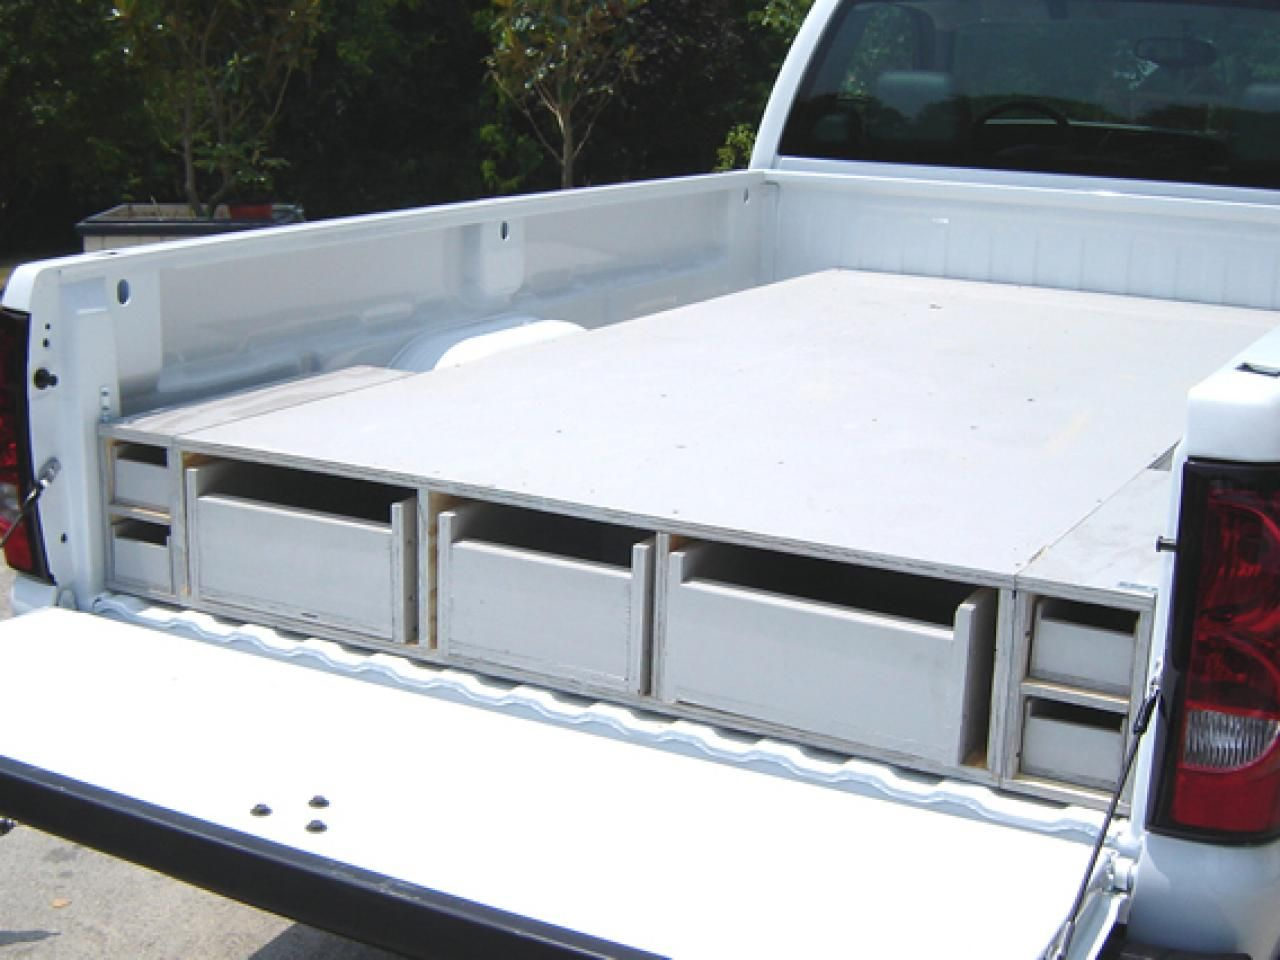 How to Install a Truck Bed Storage System | Toyota Tacoma | Truck bed storage, Truck bed camping